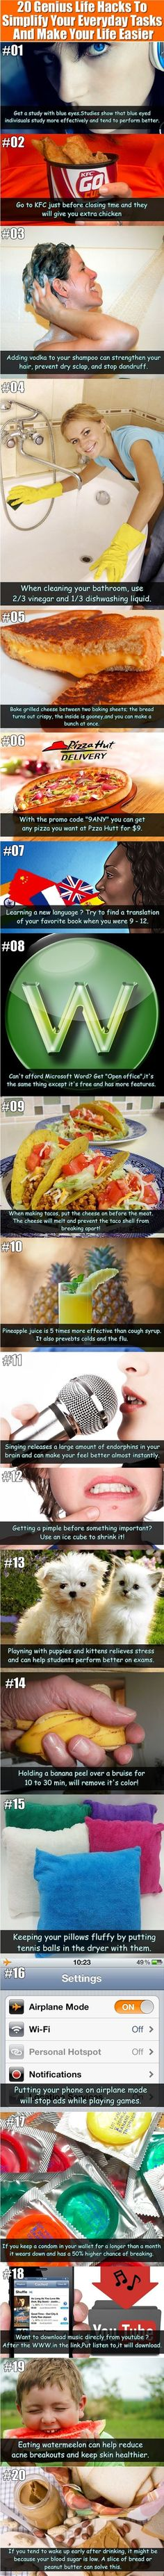 Life Hacks: You Life Can Be Fun And Easier With Those Genius Ideas. 20 Genius Life Hacks To Simplify Your Everyday Tasks And Make Your Life Genius Life Hacks To Simplify Your Everyday Tasks And Make Your Life Easier. Info Board, Things To Know, Good Things, Creative Things, Random Things, 1000 Lifehacks, Just In Case, Just For You, E Mc2